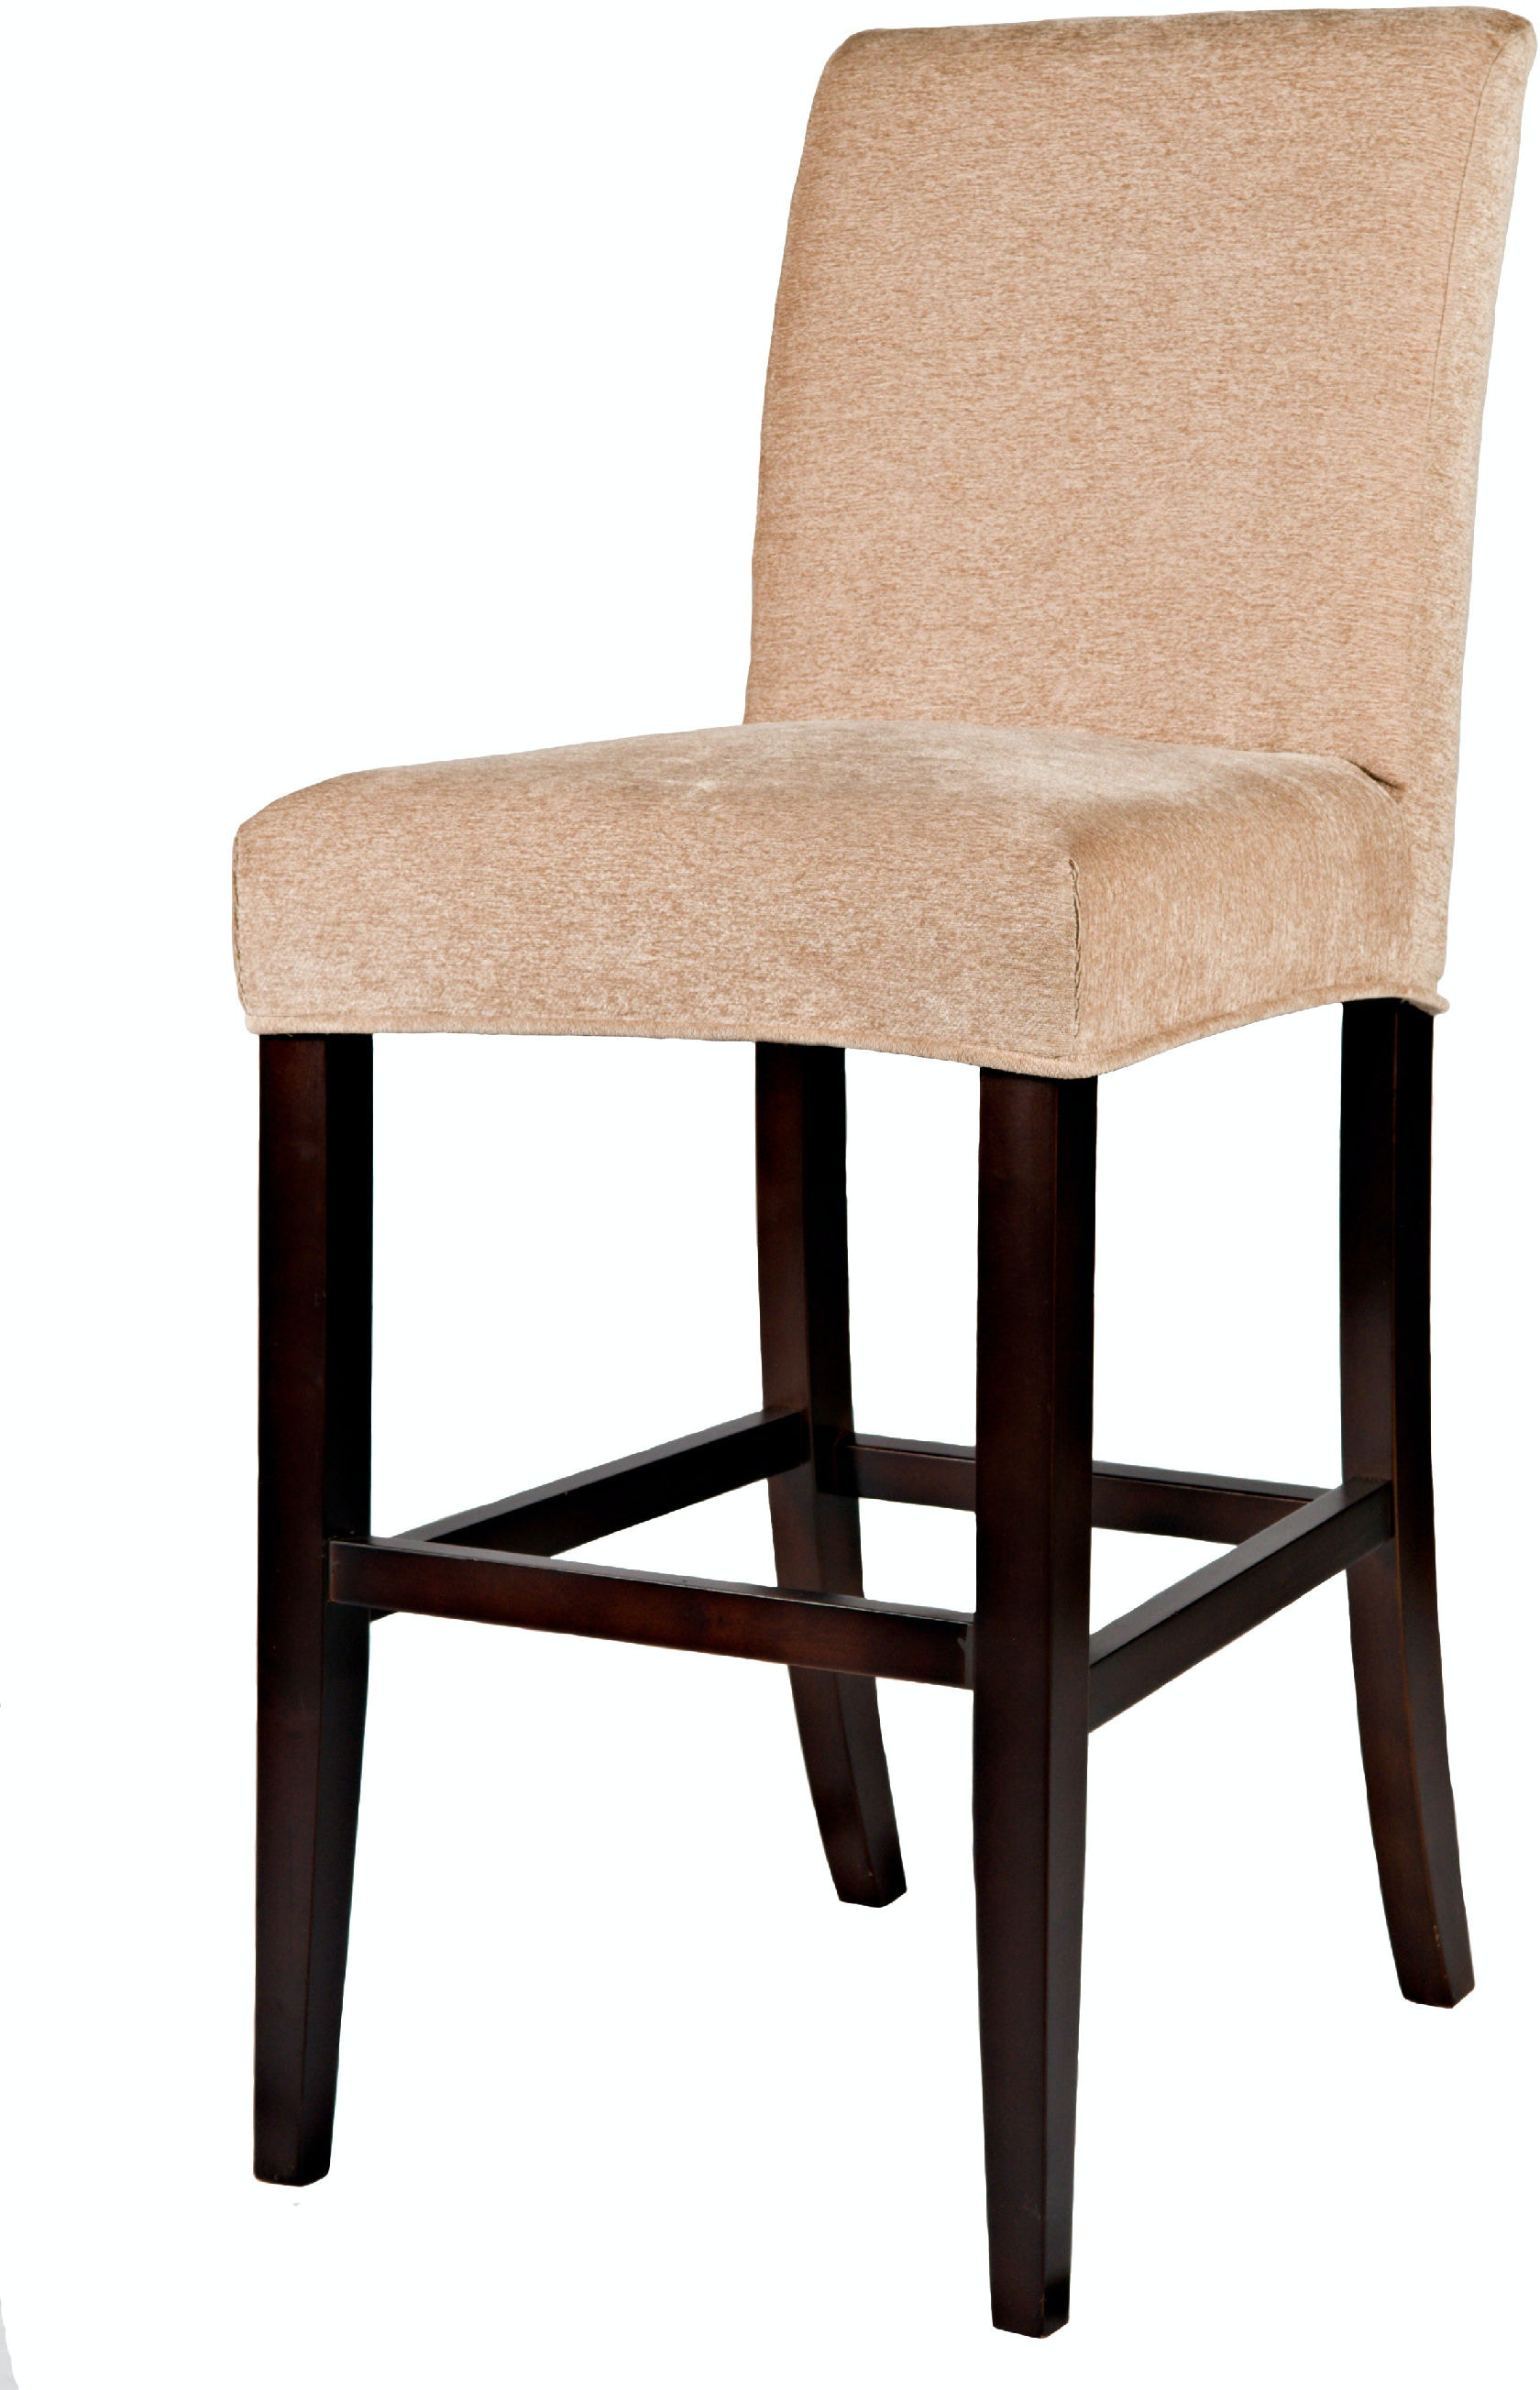 Powell Furniture Living Room Slip Over Bar Stool 30 Inch  : 742 432abs from www.carolhouse.com size 1024 x 768 jpeg 29kB